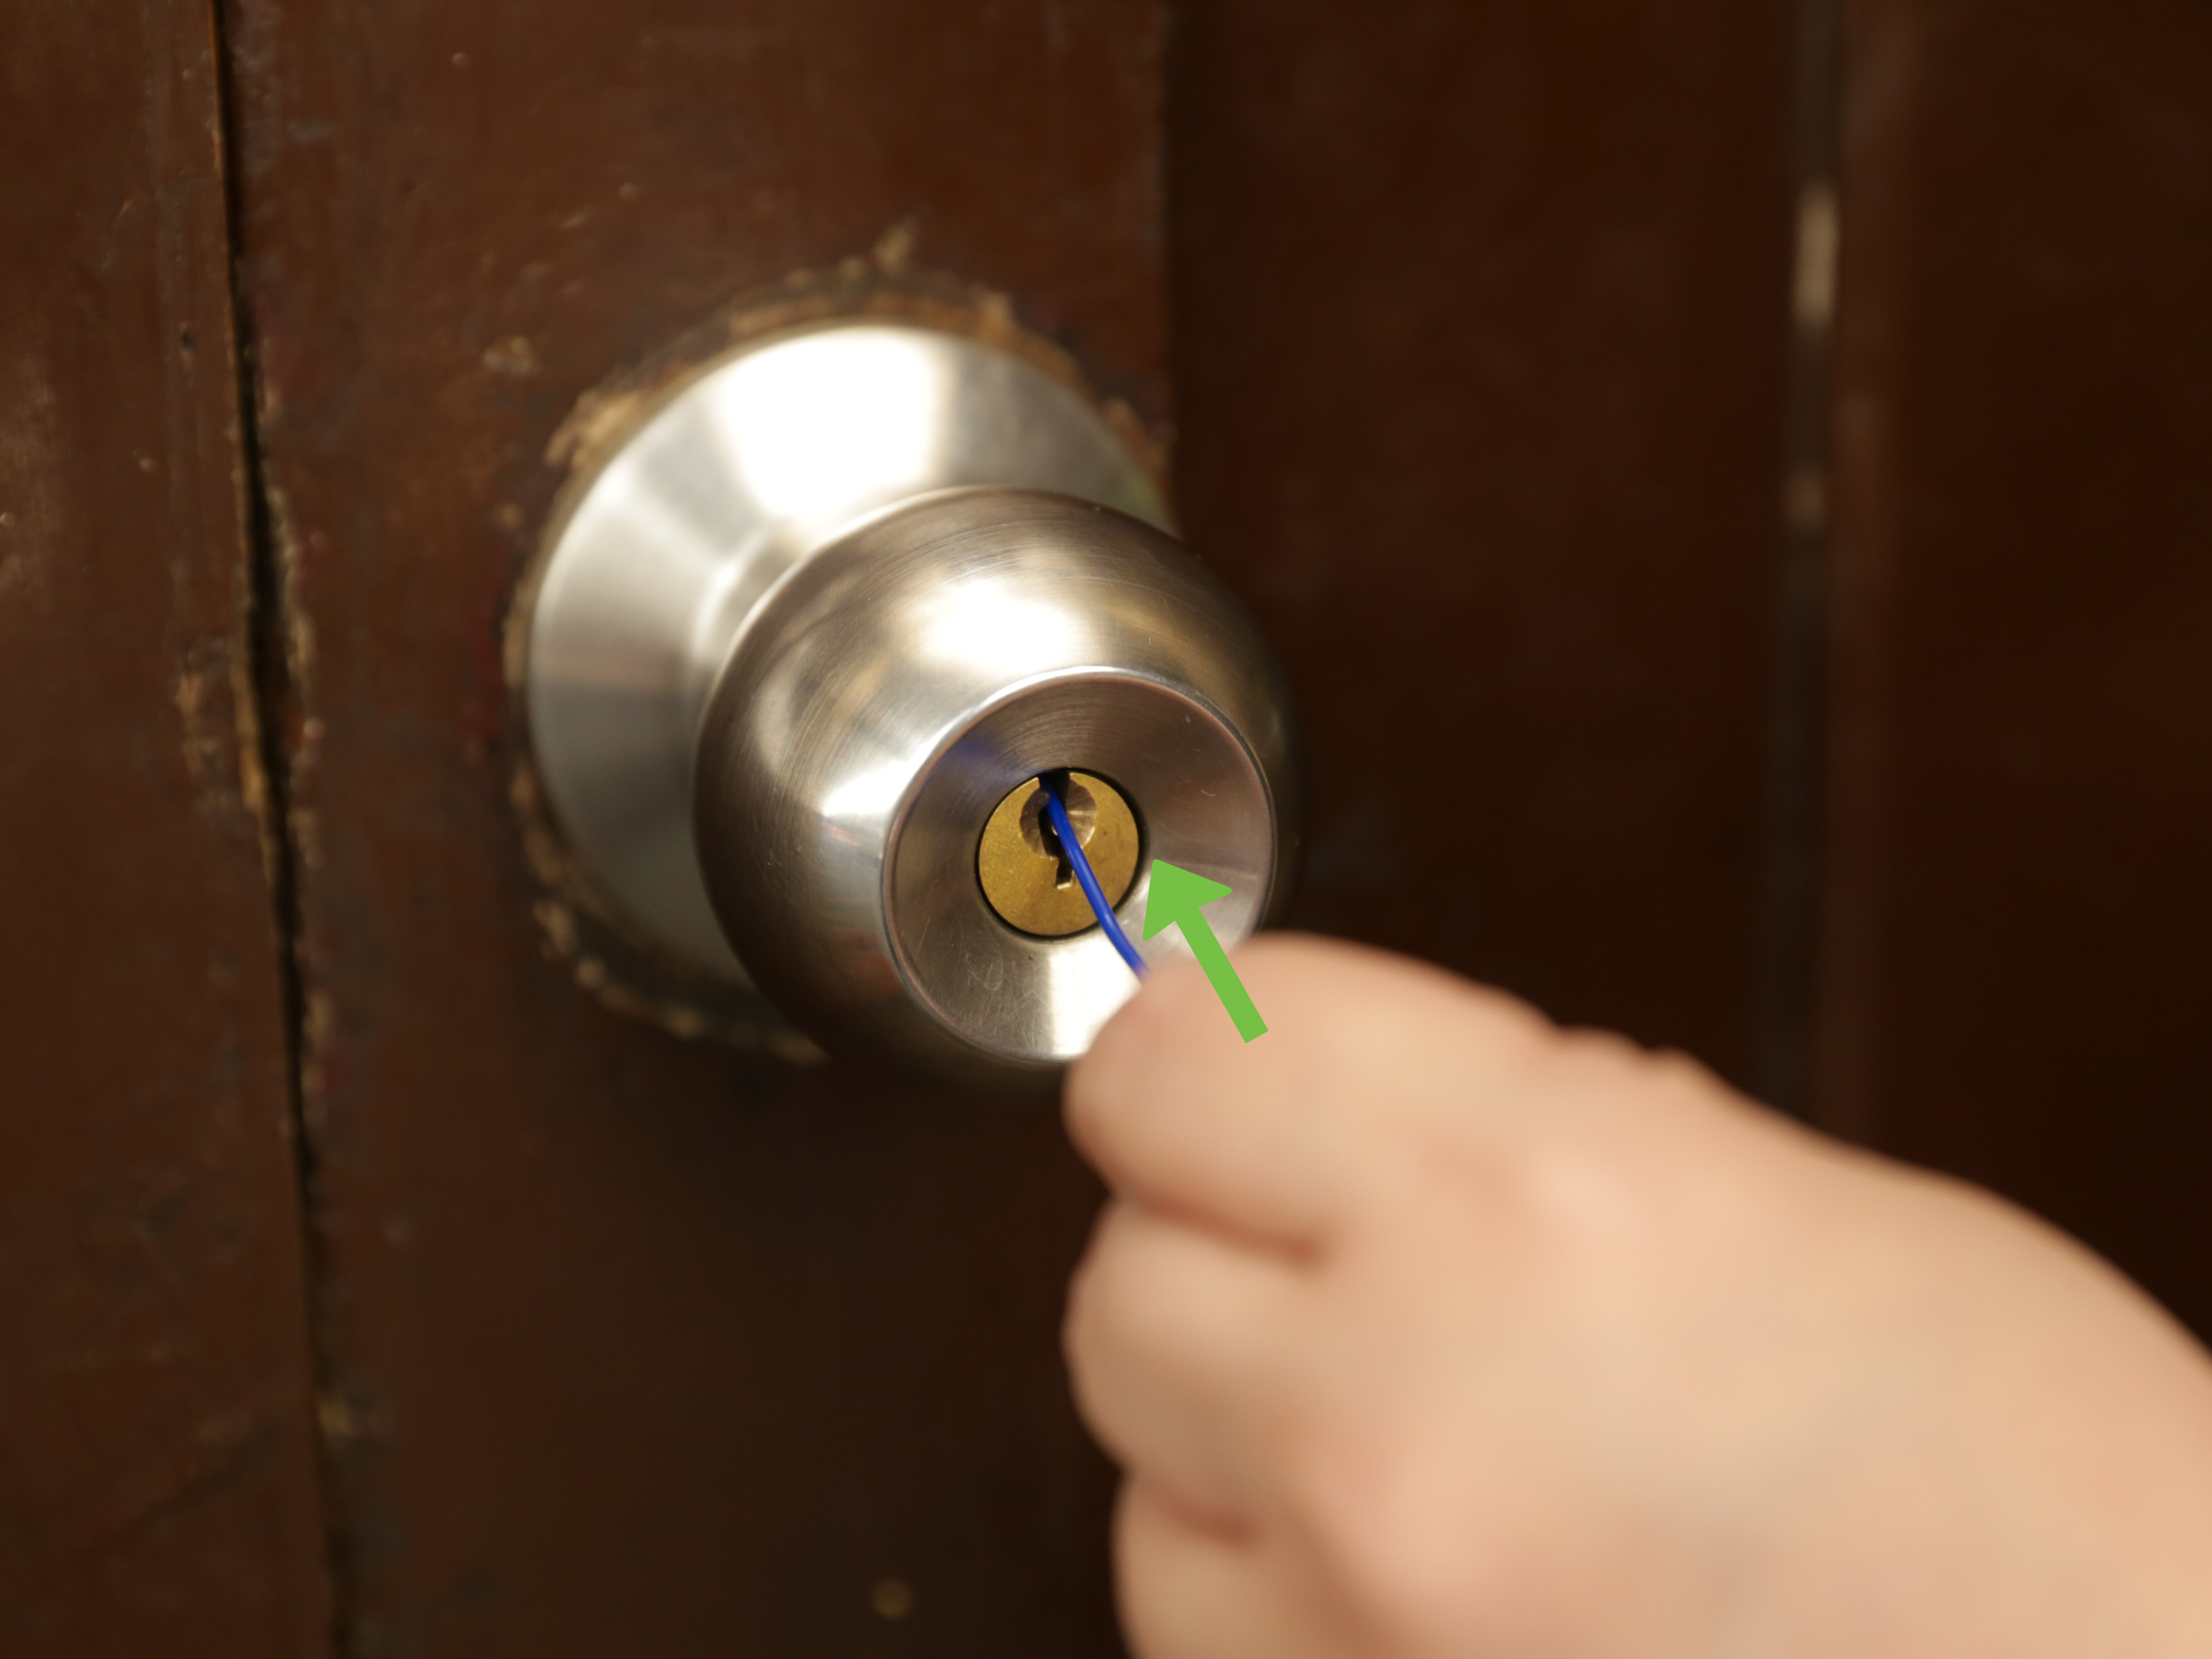 Le Meilleur 3 Ways To Pick Locks On Doorknobs Wikihow Ce Mois Ci